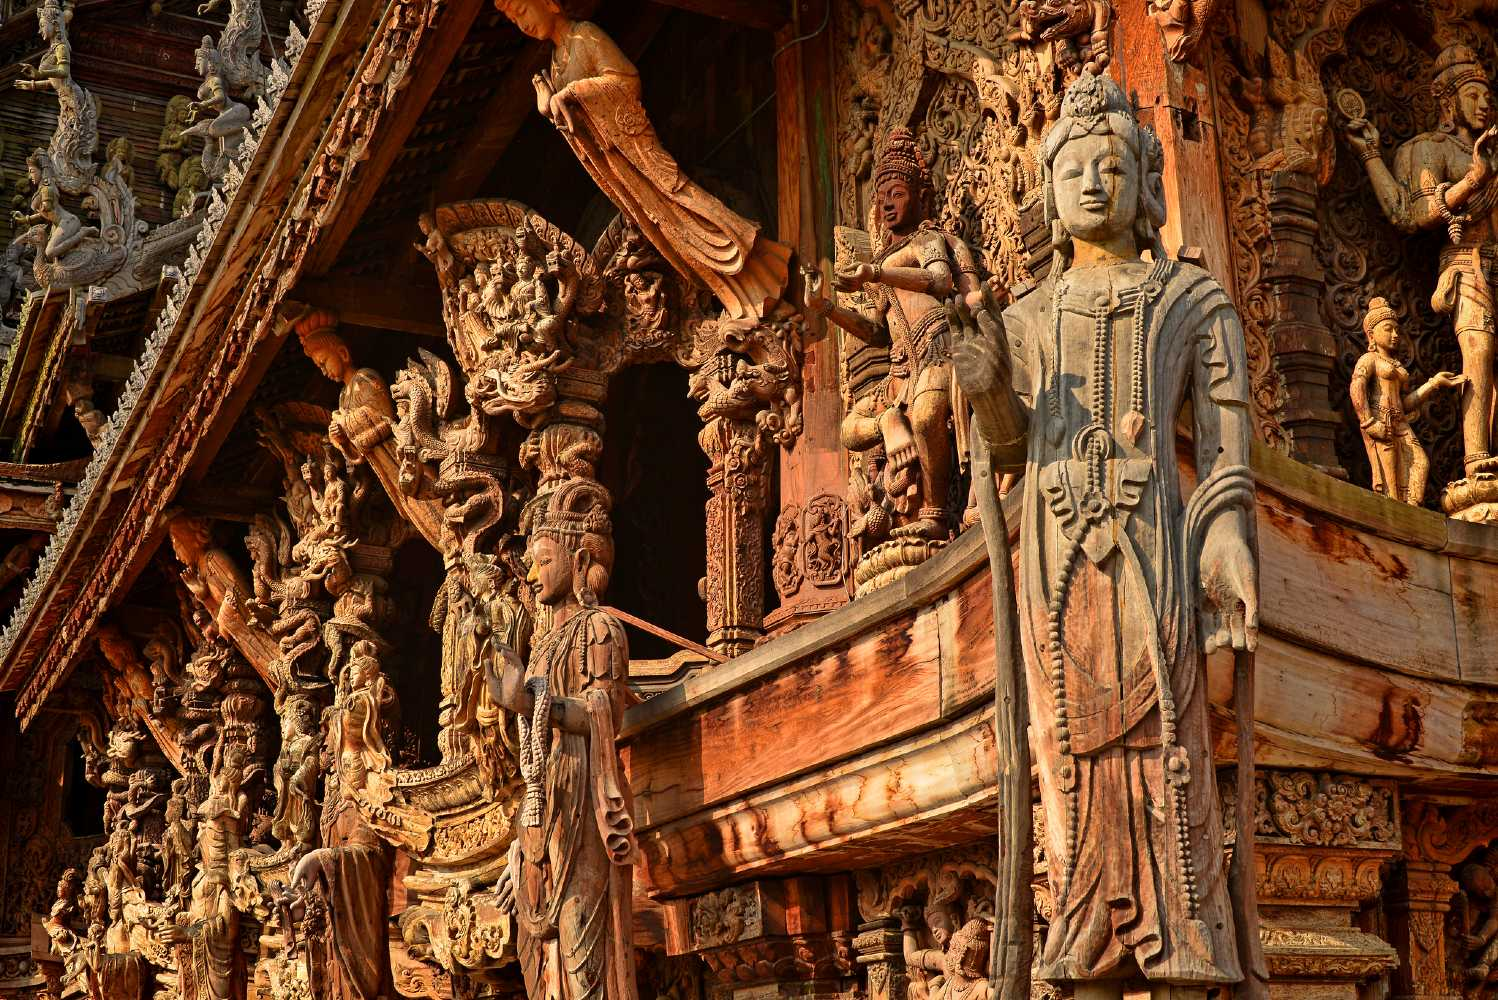 Small details in the wood and Buddhas of The Sanctuary Of Truth Pattaya